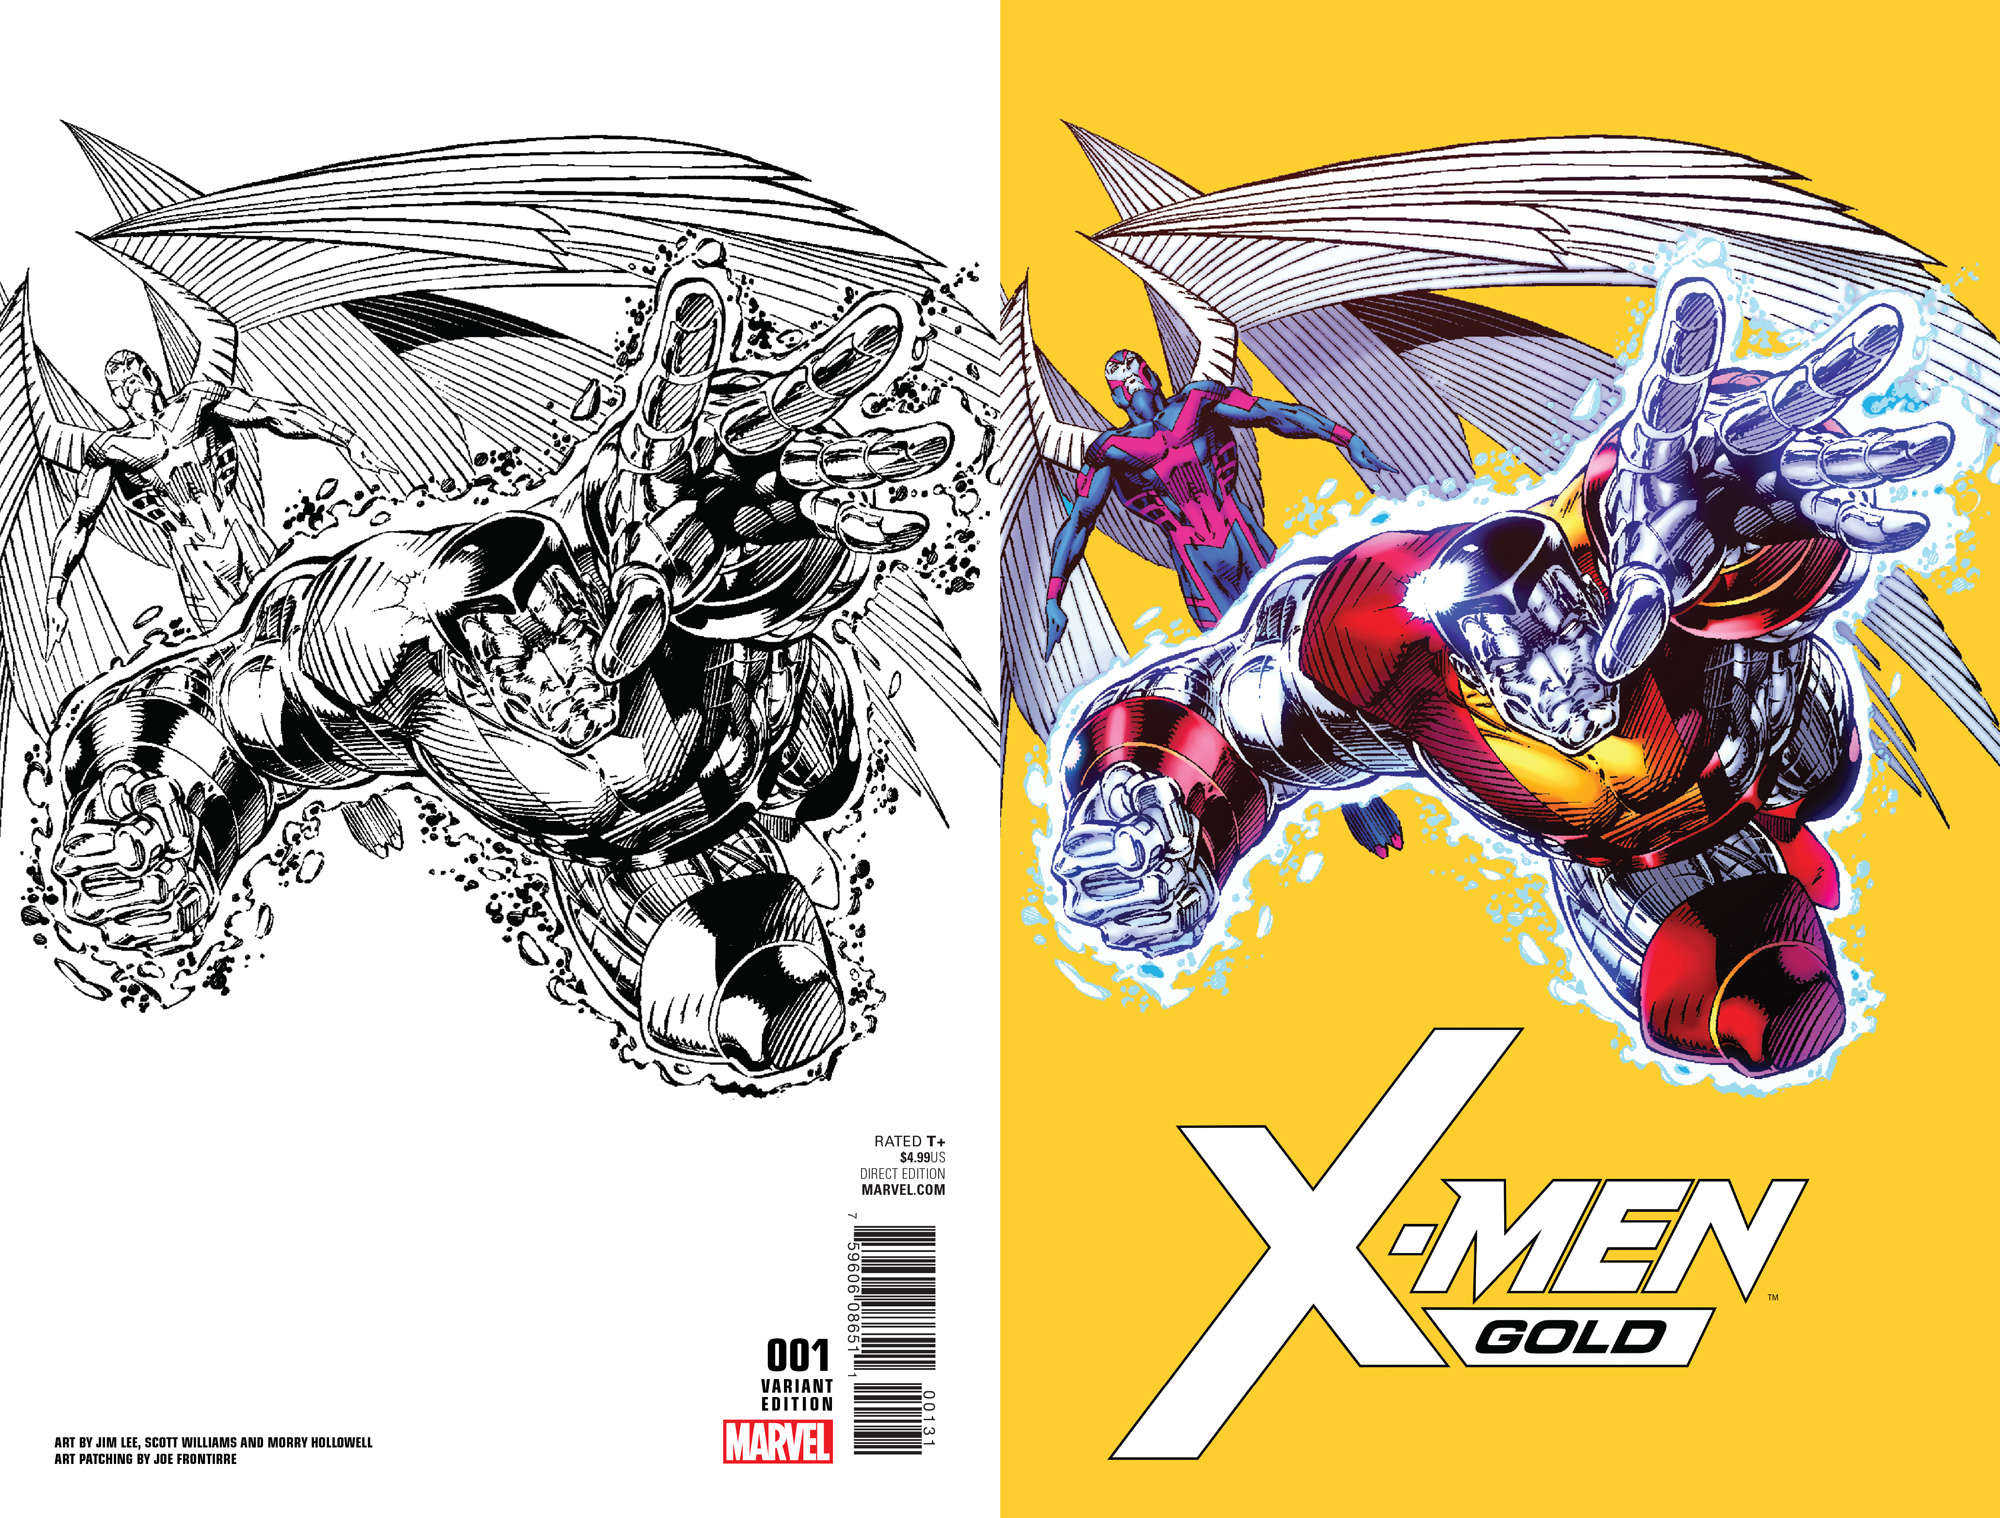 Jim Lee (Sort Of) Returns To Marvel With X-Men Gold And Blue Variant Covers